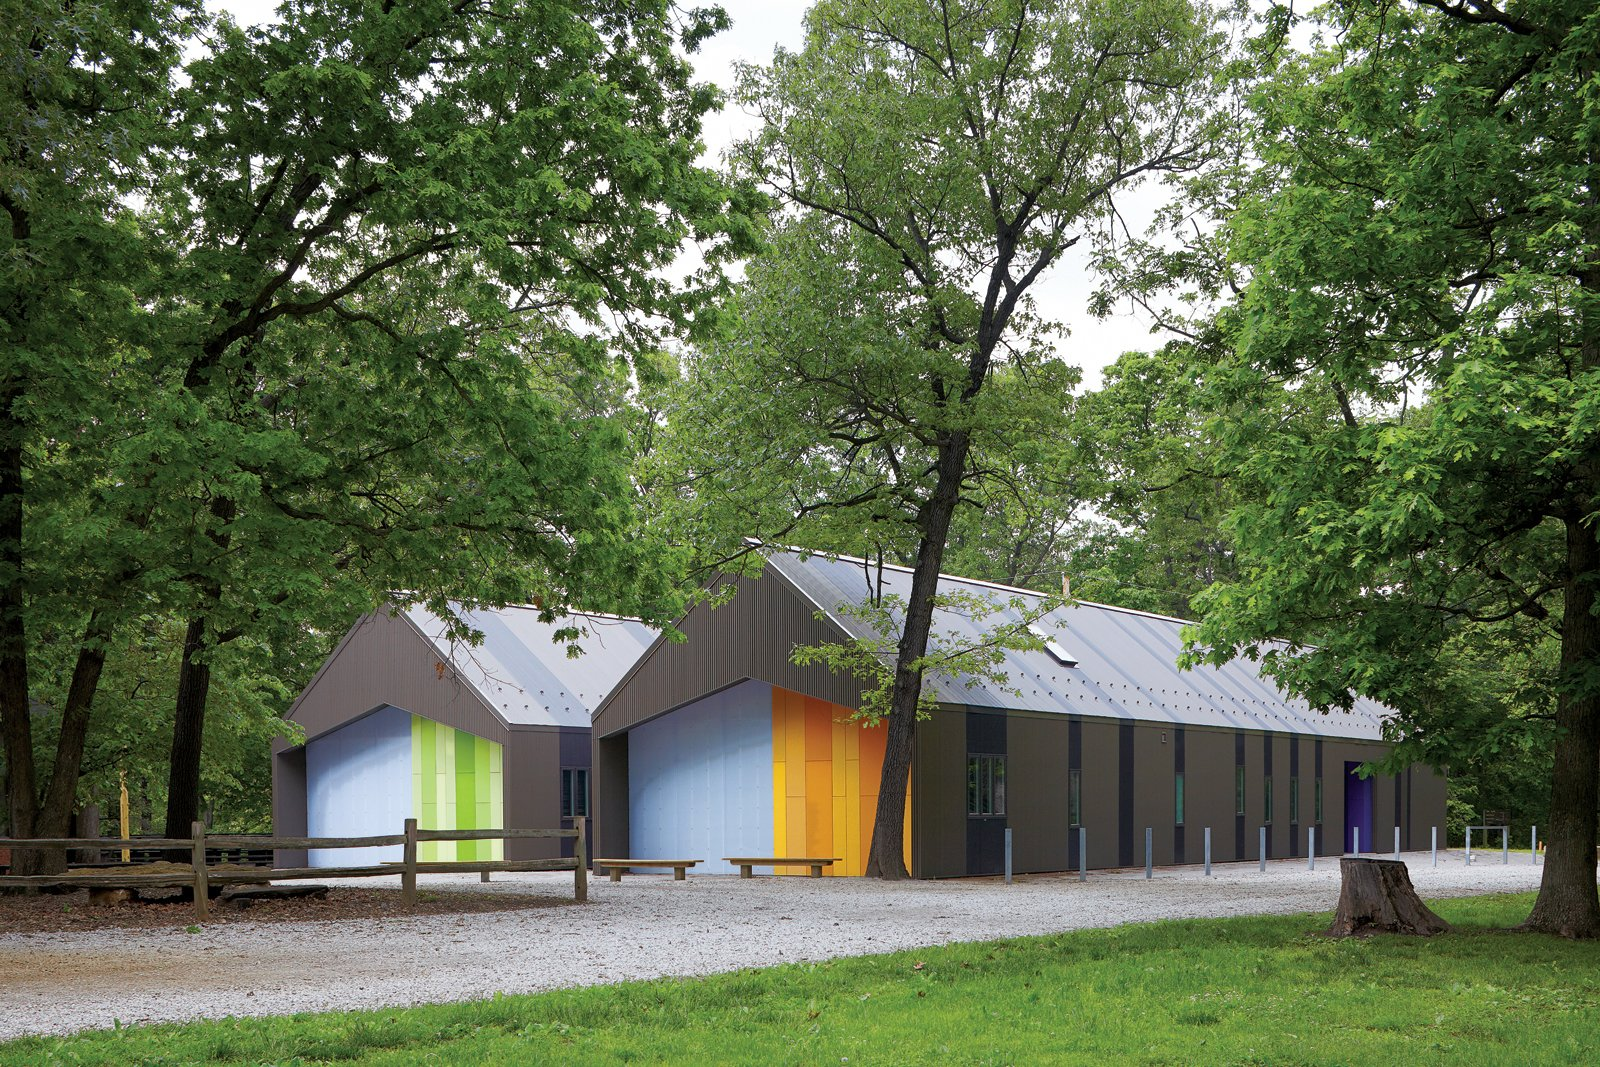 Exterior, Cabin Building Type, Metal Roof Material, and Gable RoofLine The two-tone corrugated metal cladding helps the sheds blend into the landscape, along with windows custom-colored by the manufacturer to match.  Photo 2 of 2 in Little Cabins on the Prairie